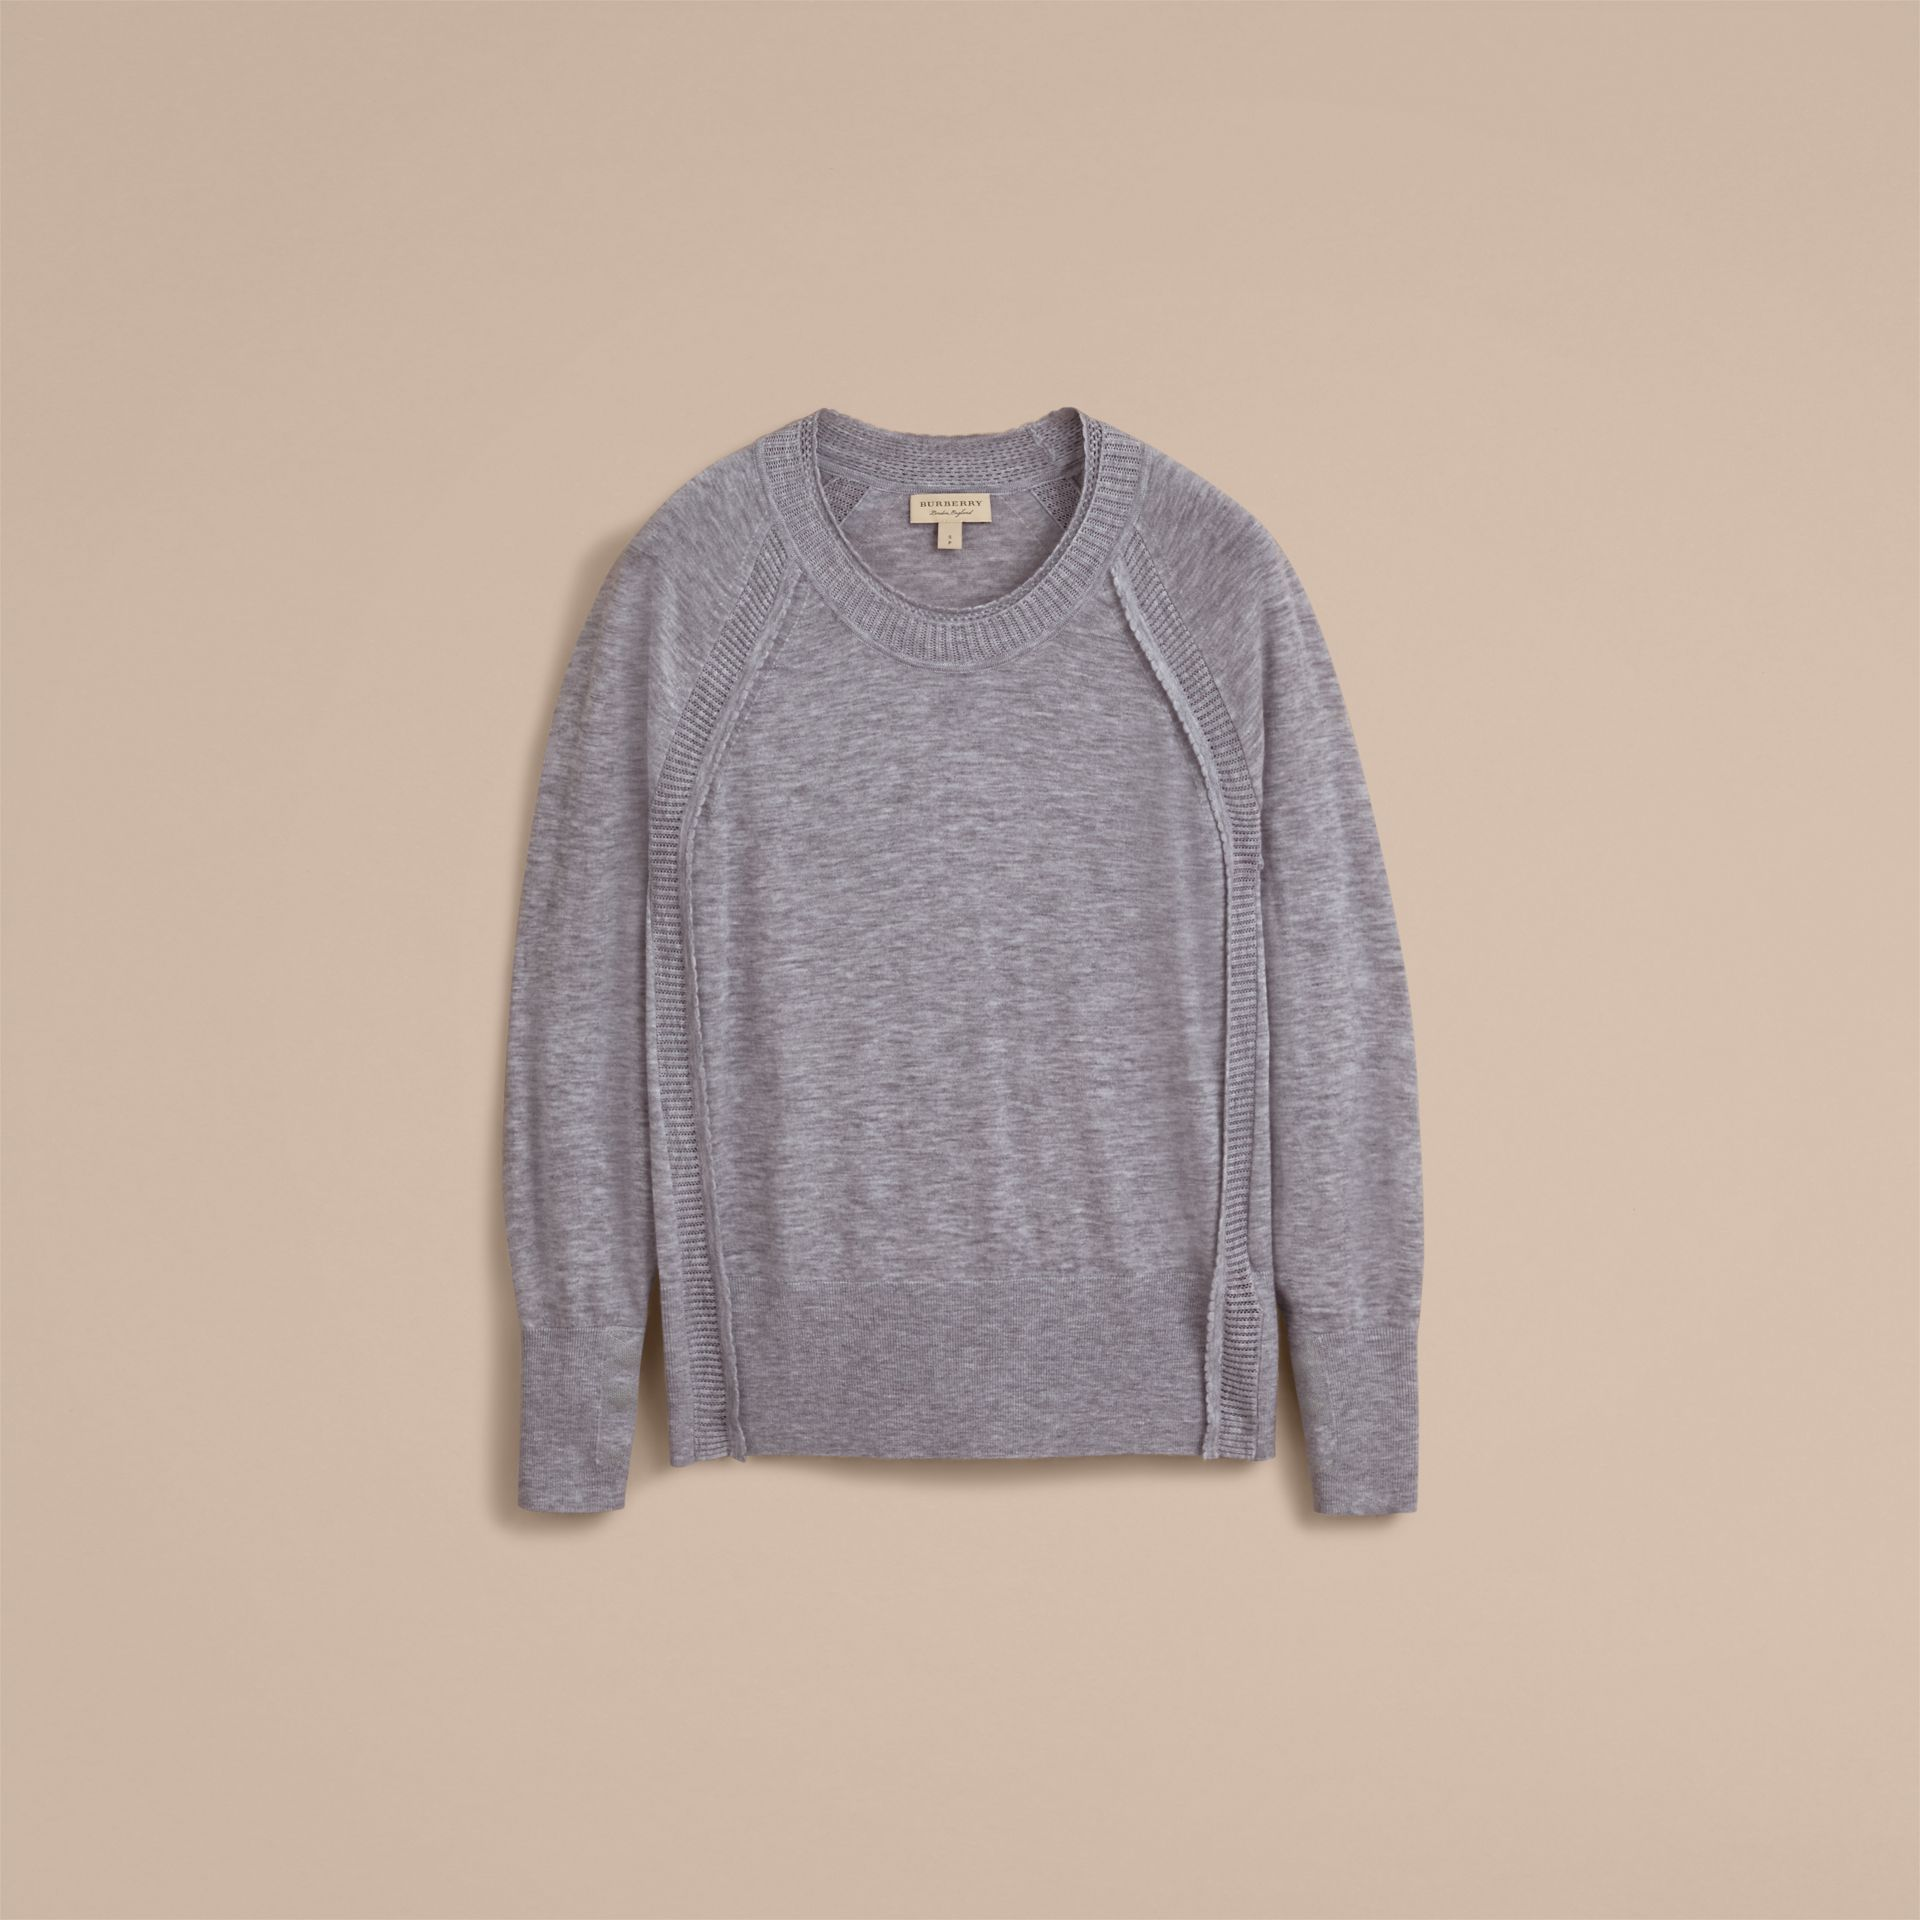 Open-knit Detail Cashmere Crew Neck Sweater in Light Grey Melange - Women | Burberry - gallery image 3